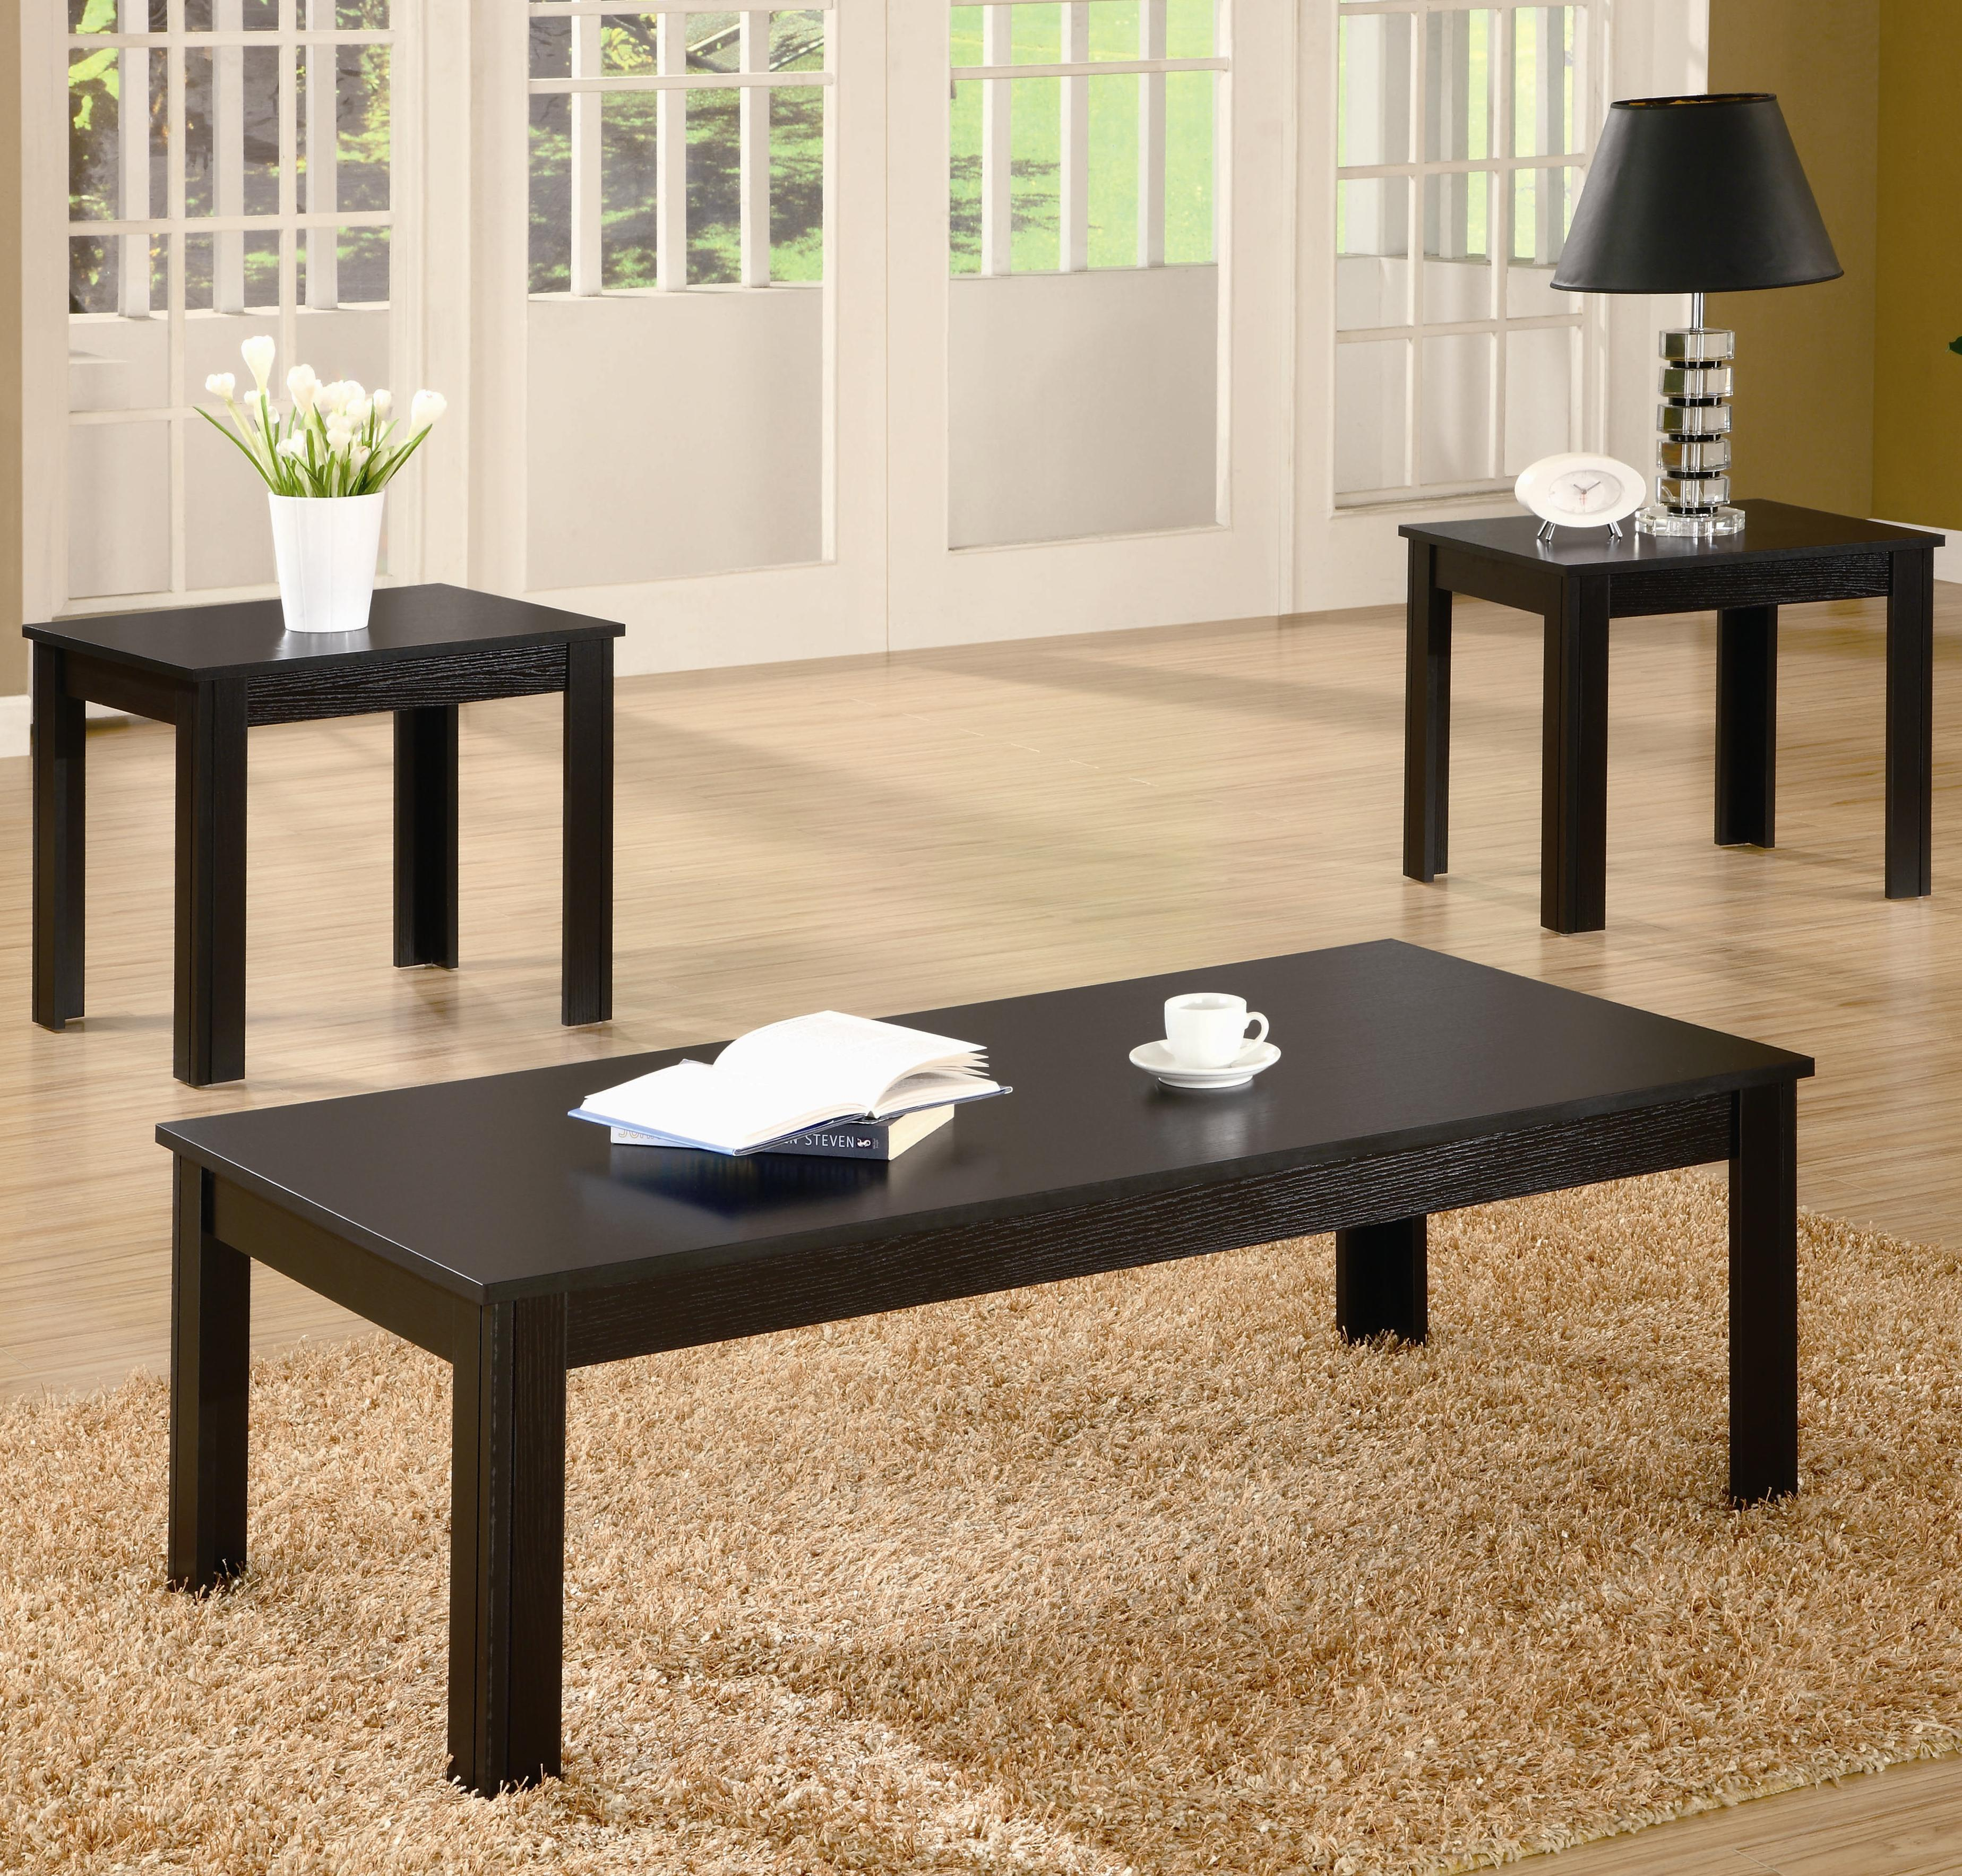 coffee tables ideas spectacular black and end table set windows sample themes amazing all accreditation trendy sets bedroom furniture with desk distressed farmhouse small